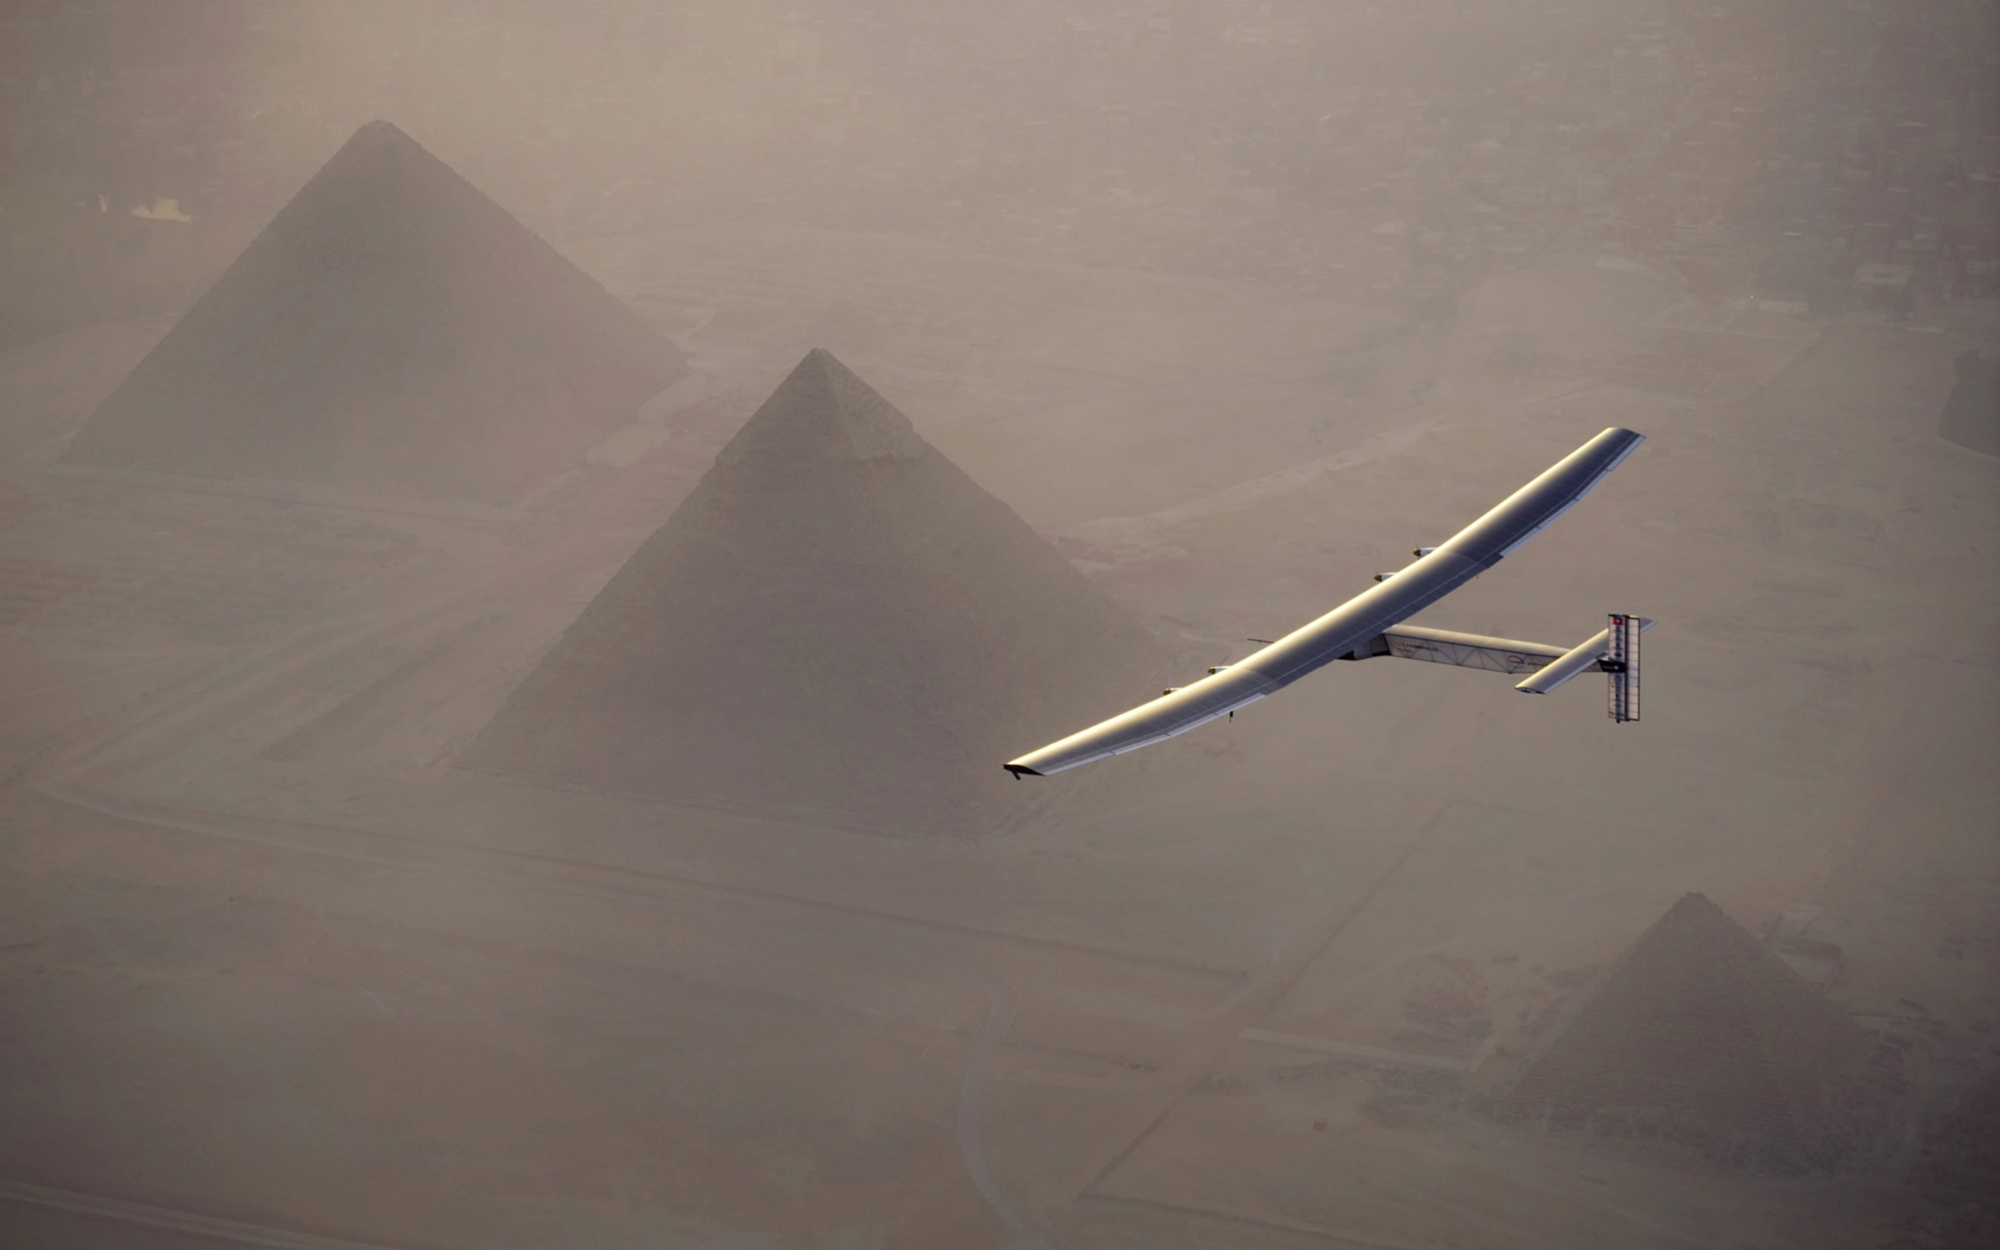 Solar Impulse completes its fuel-free trip around the world